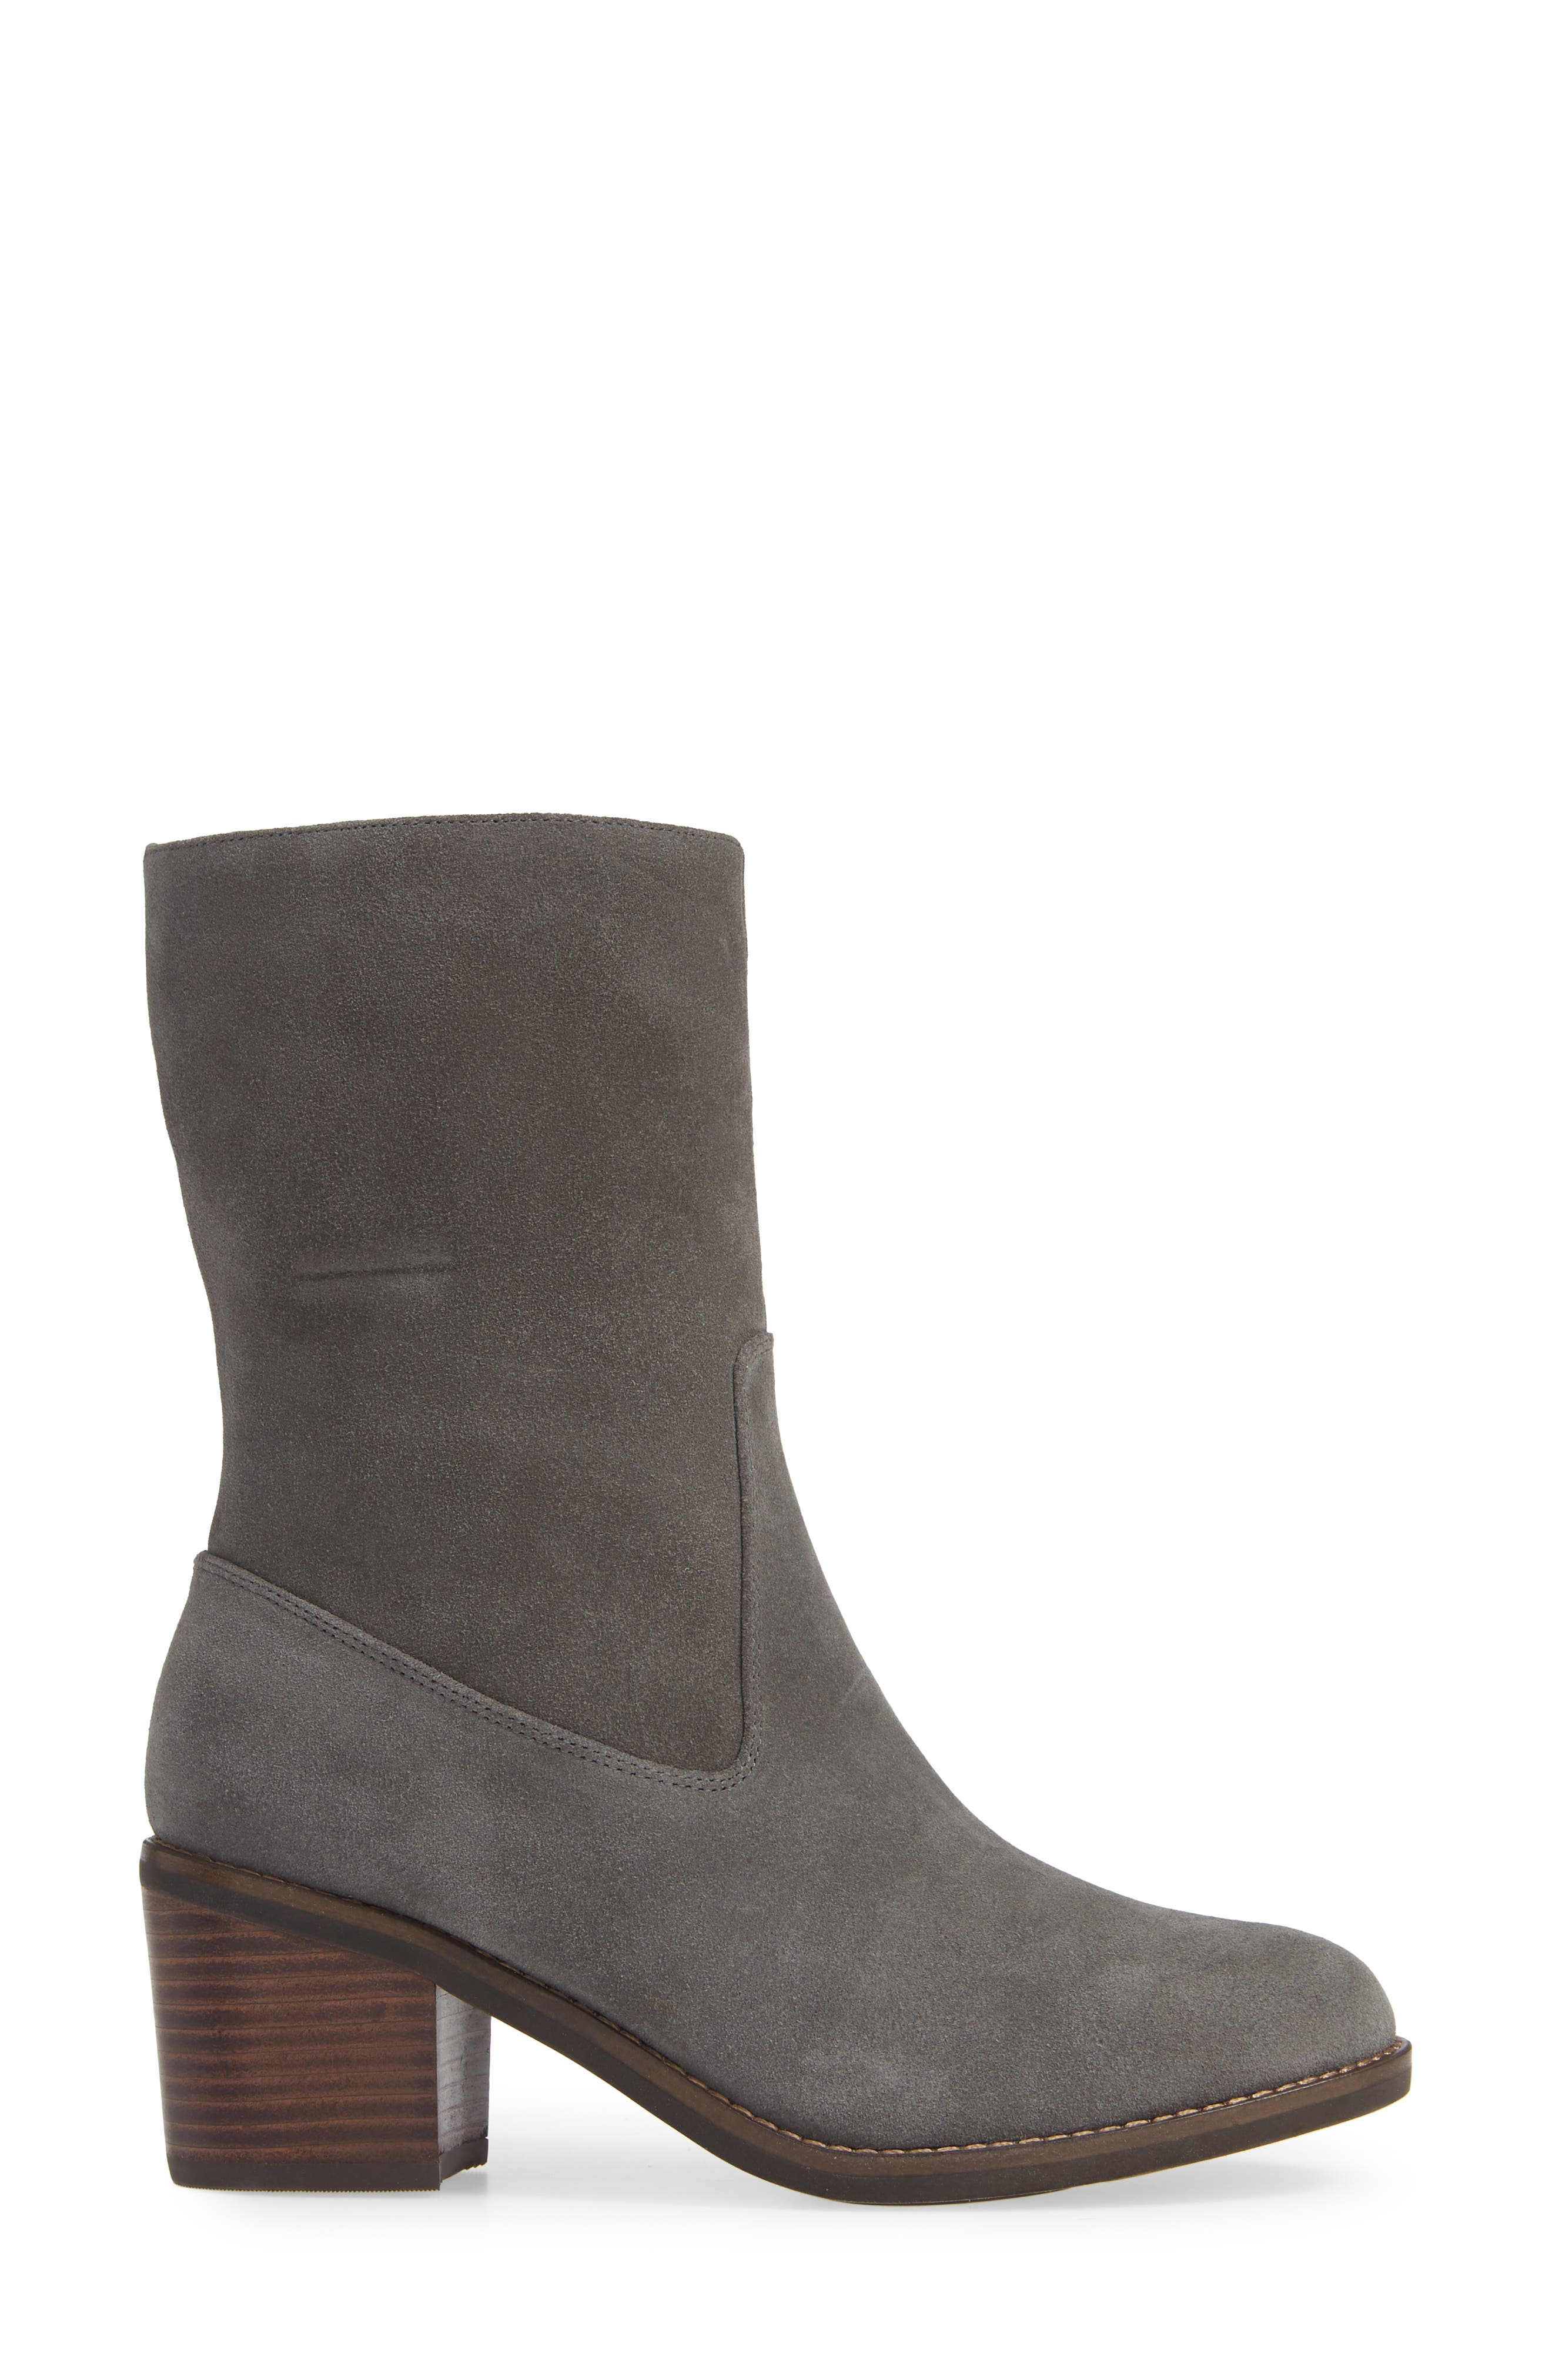 GENTLE SOULS BY KENNETH COLE,                             Verona Bootie,                             Alternate thumbnail 3, color,                             020